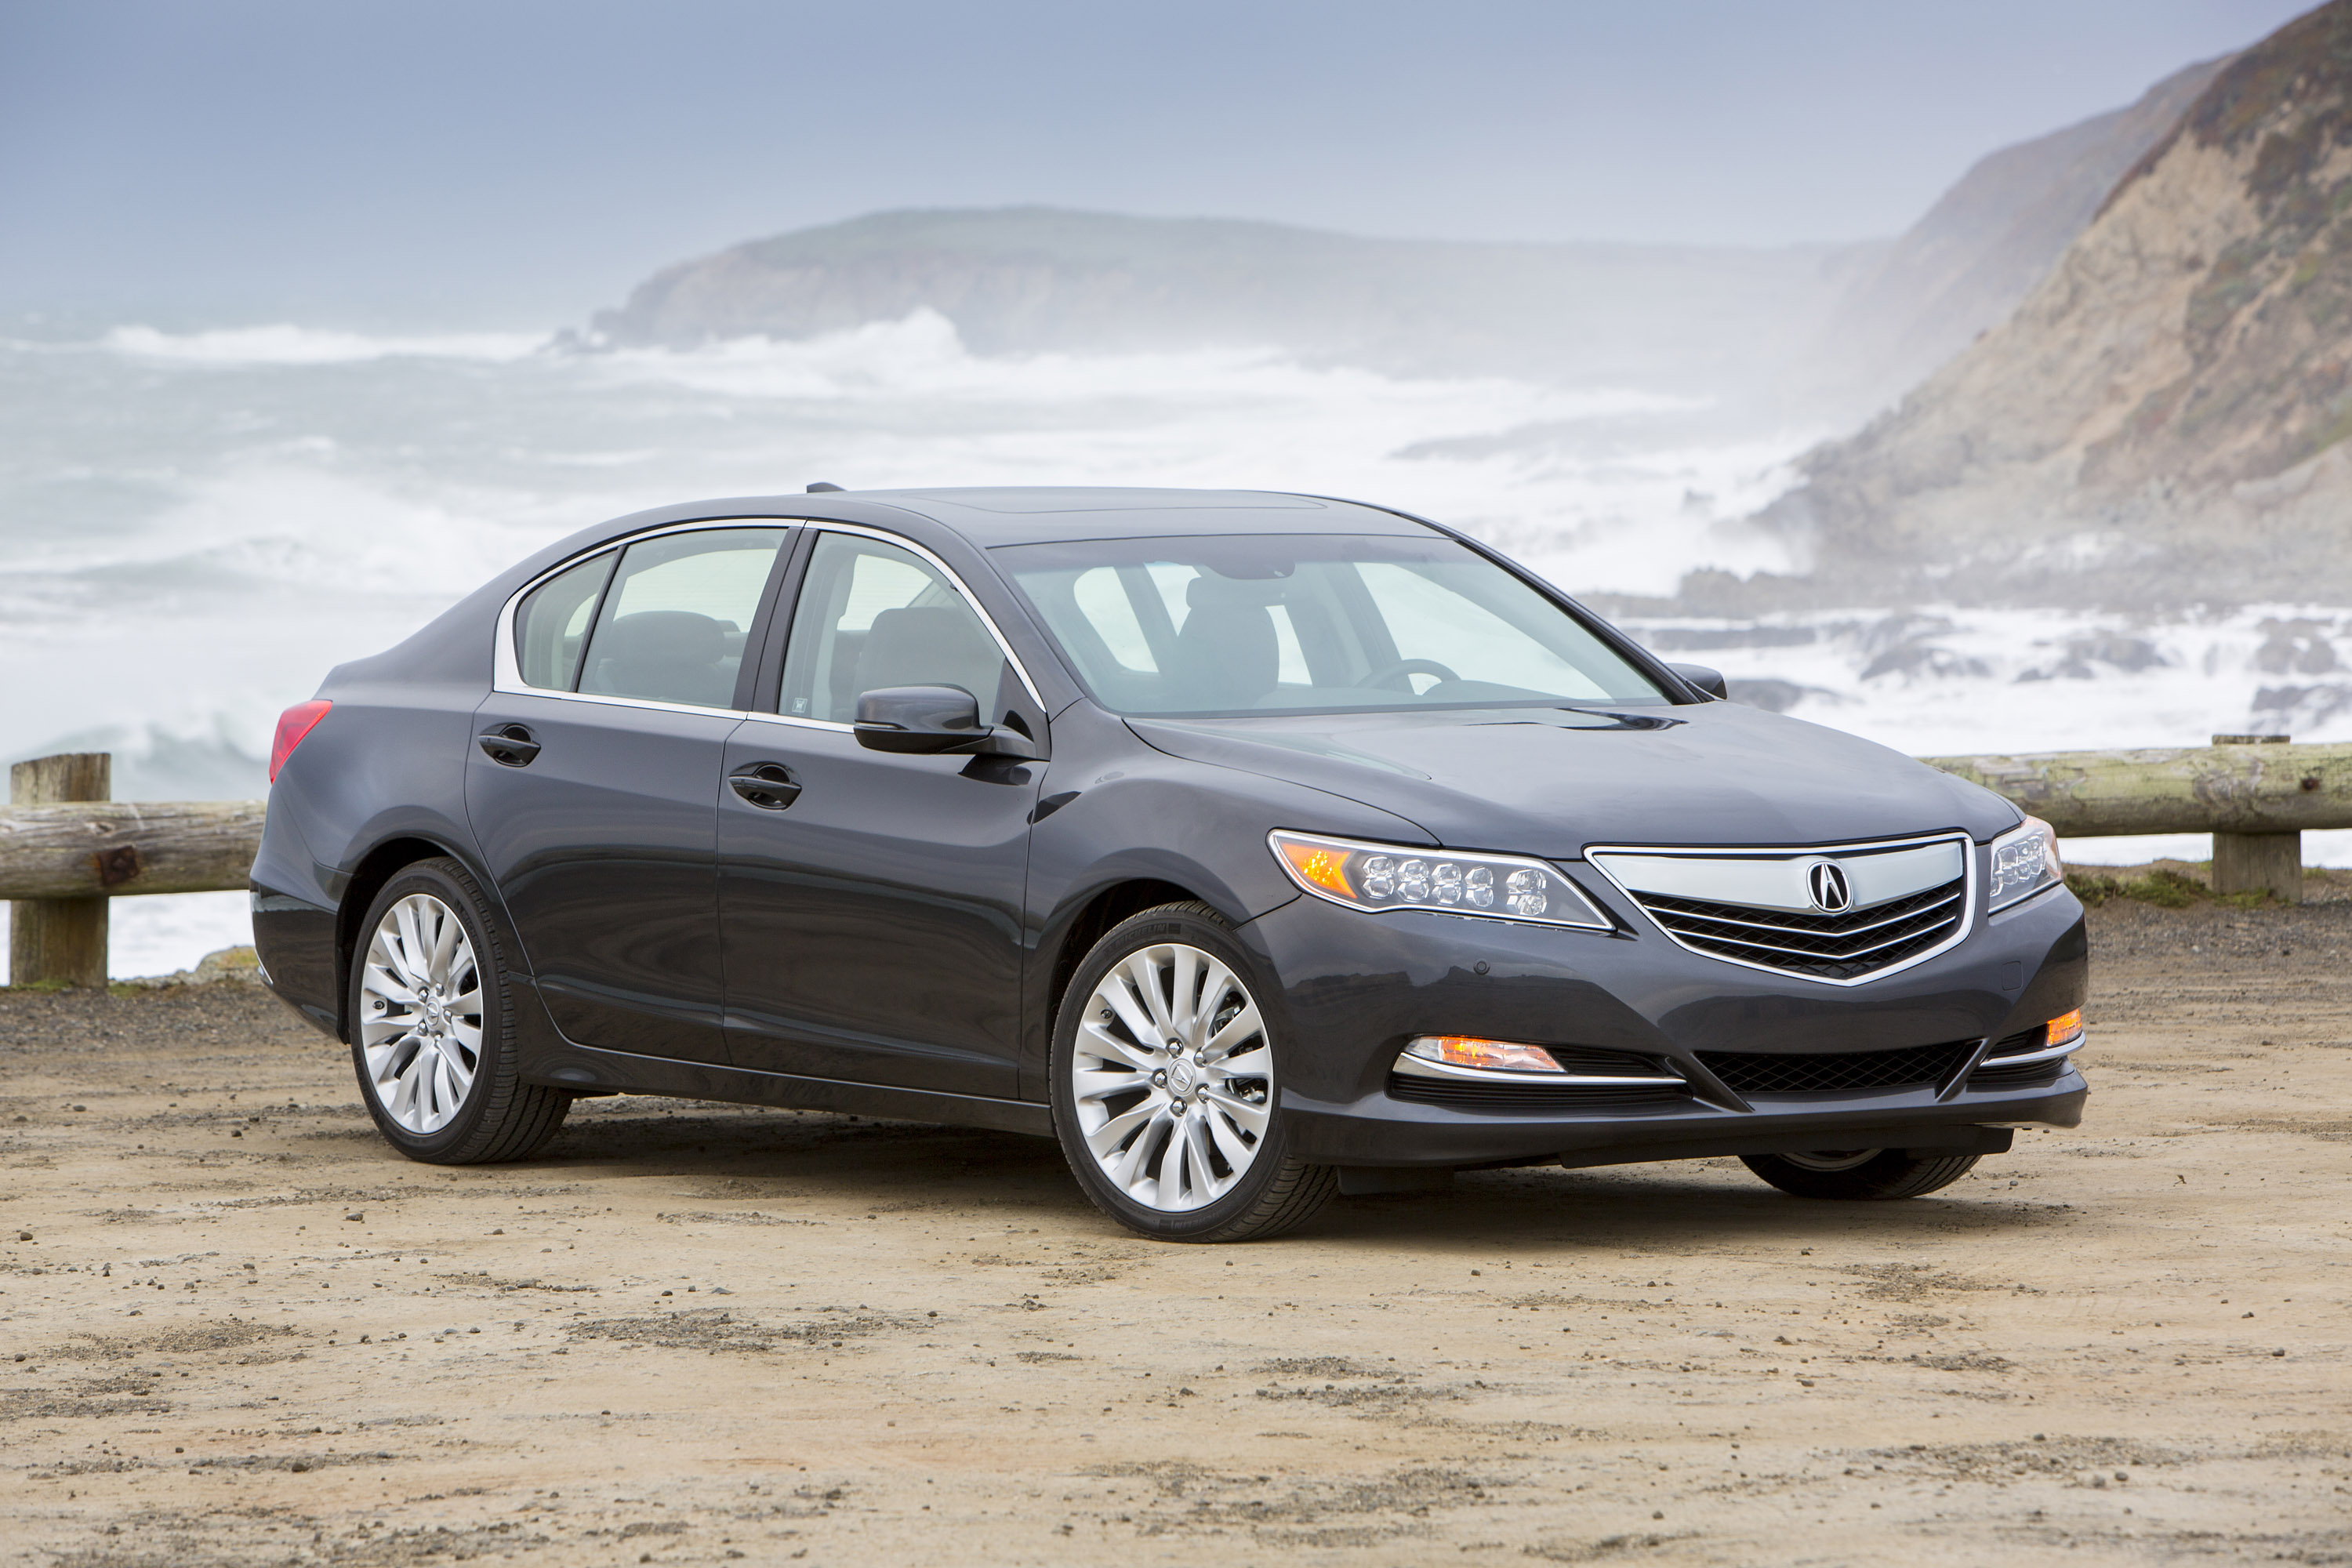 fl inventory bay for acura sale new rlx area dealers tampa